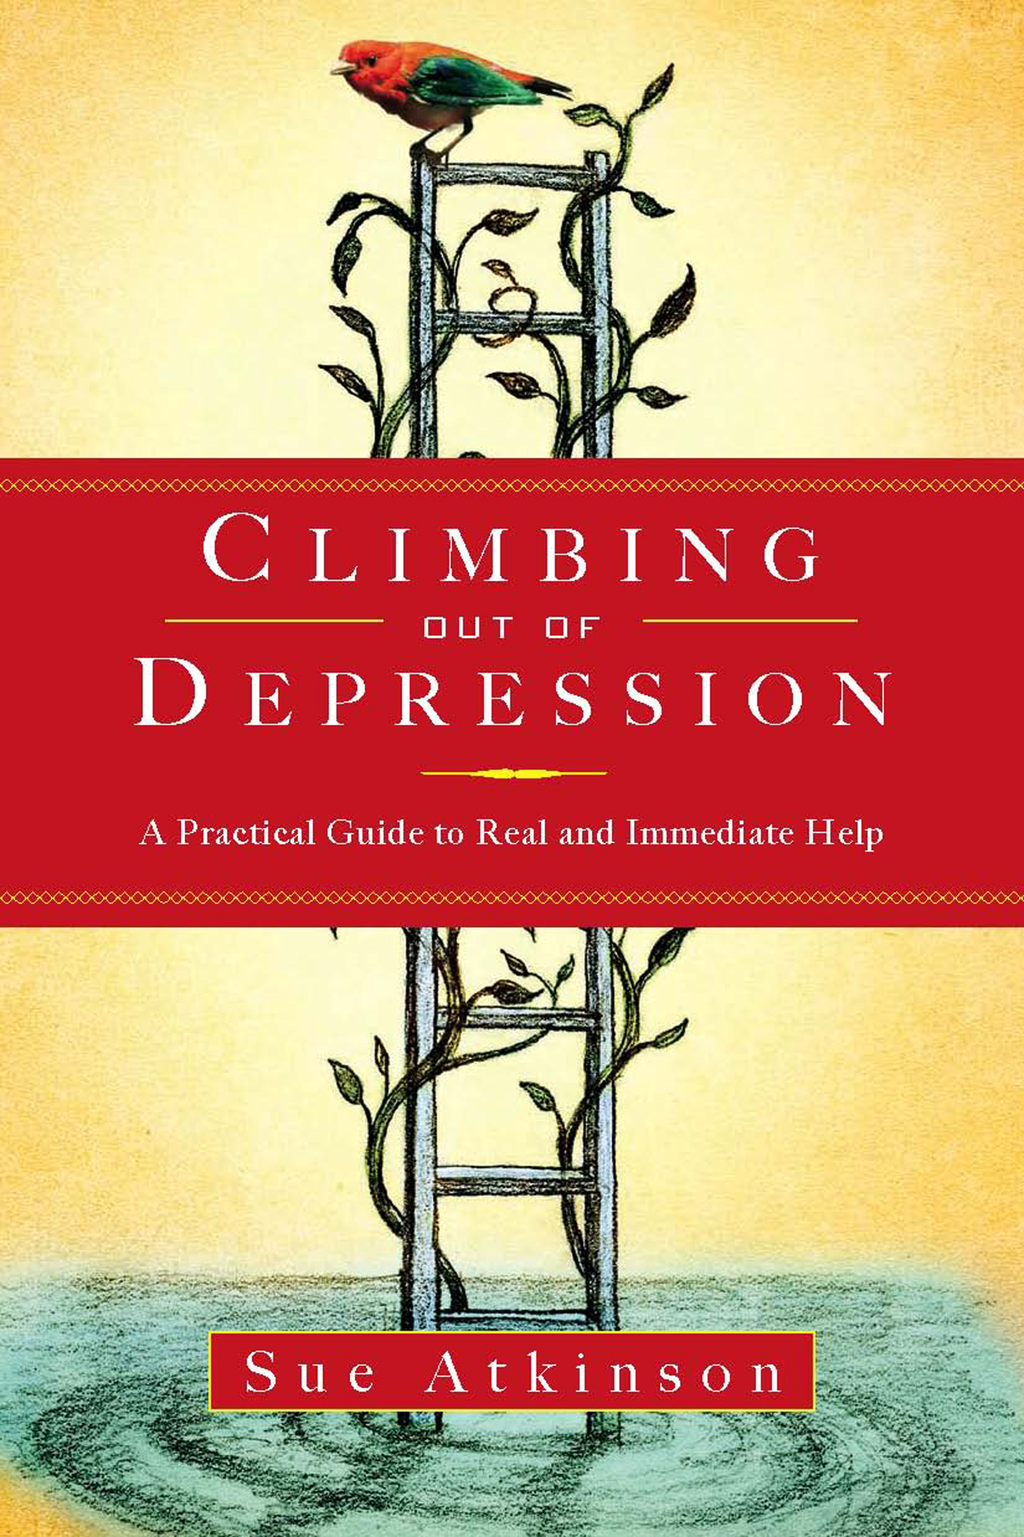 Climbing Out of Depression By: Sue Atkinson